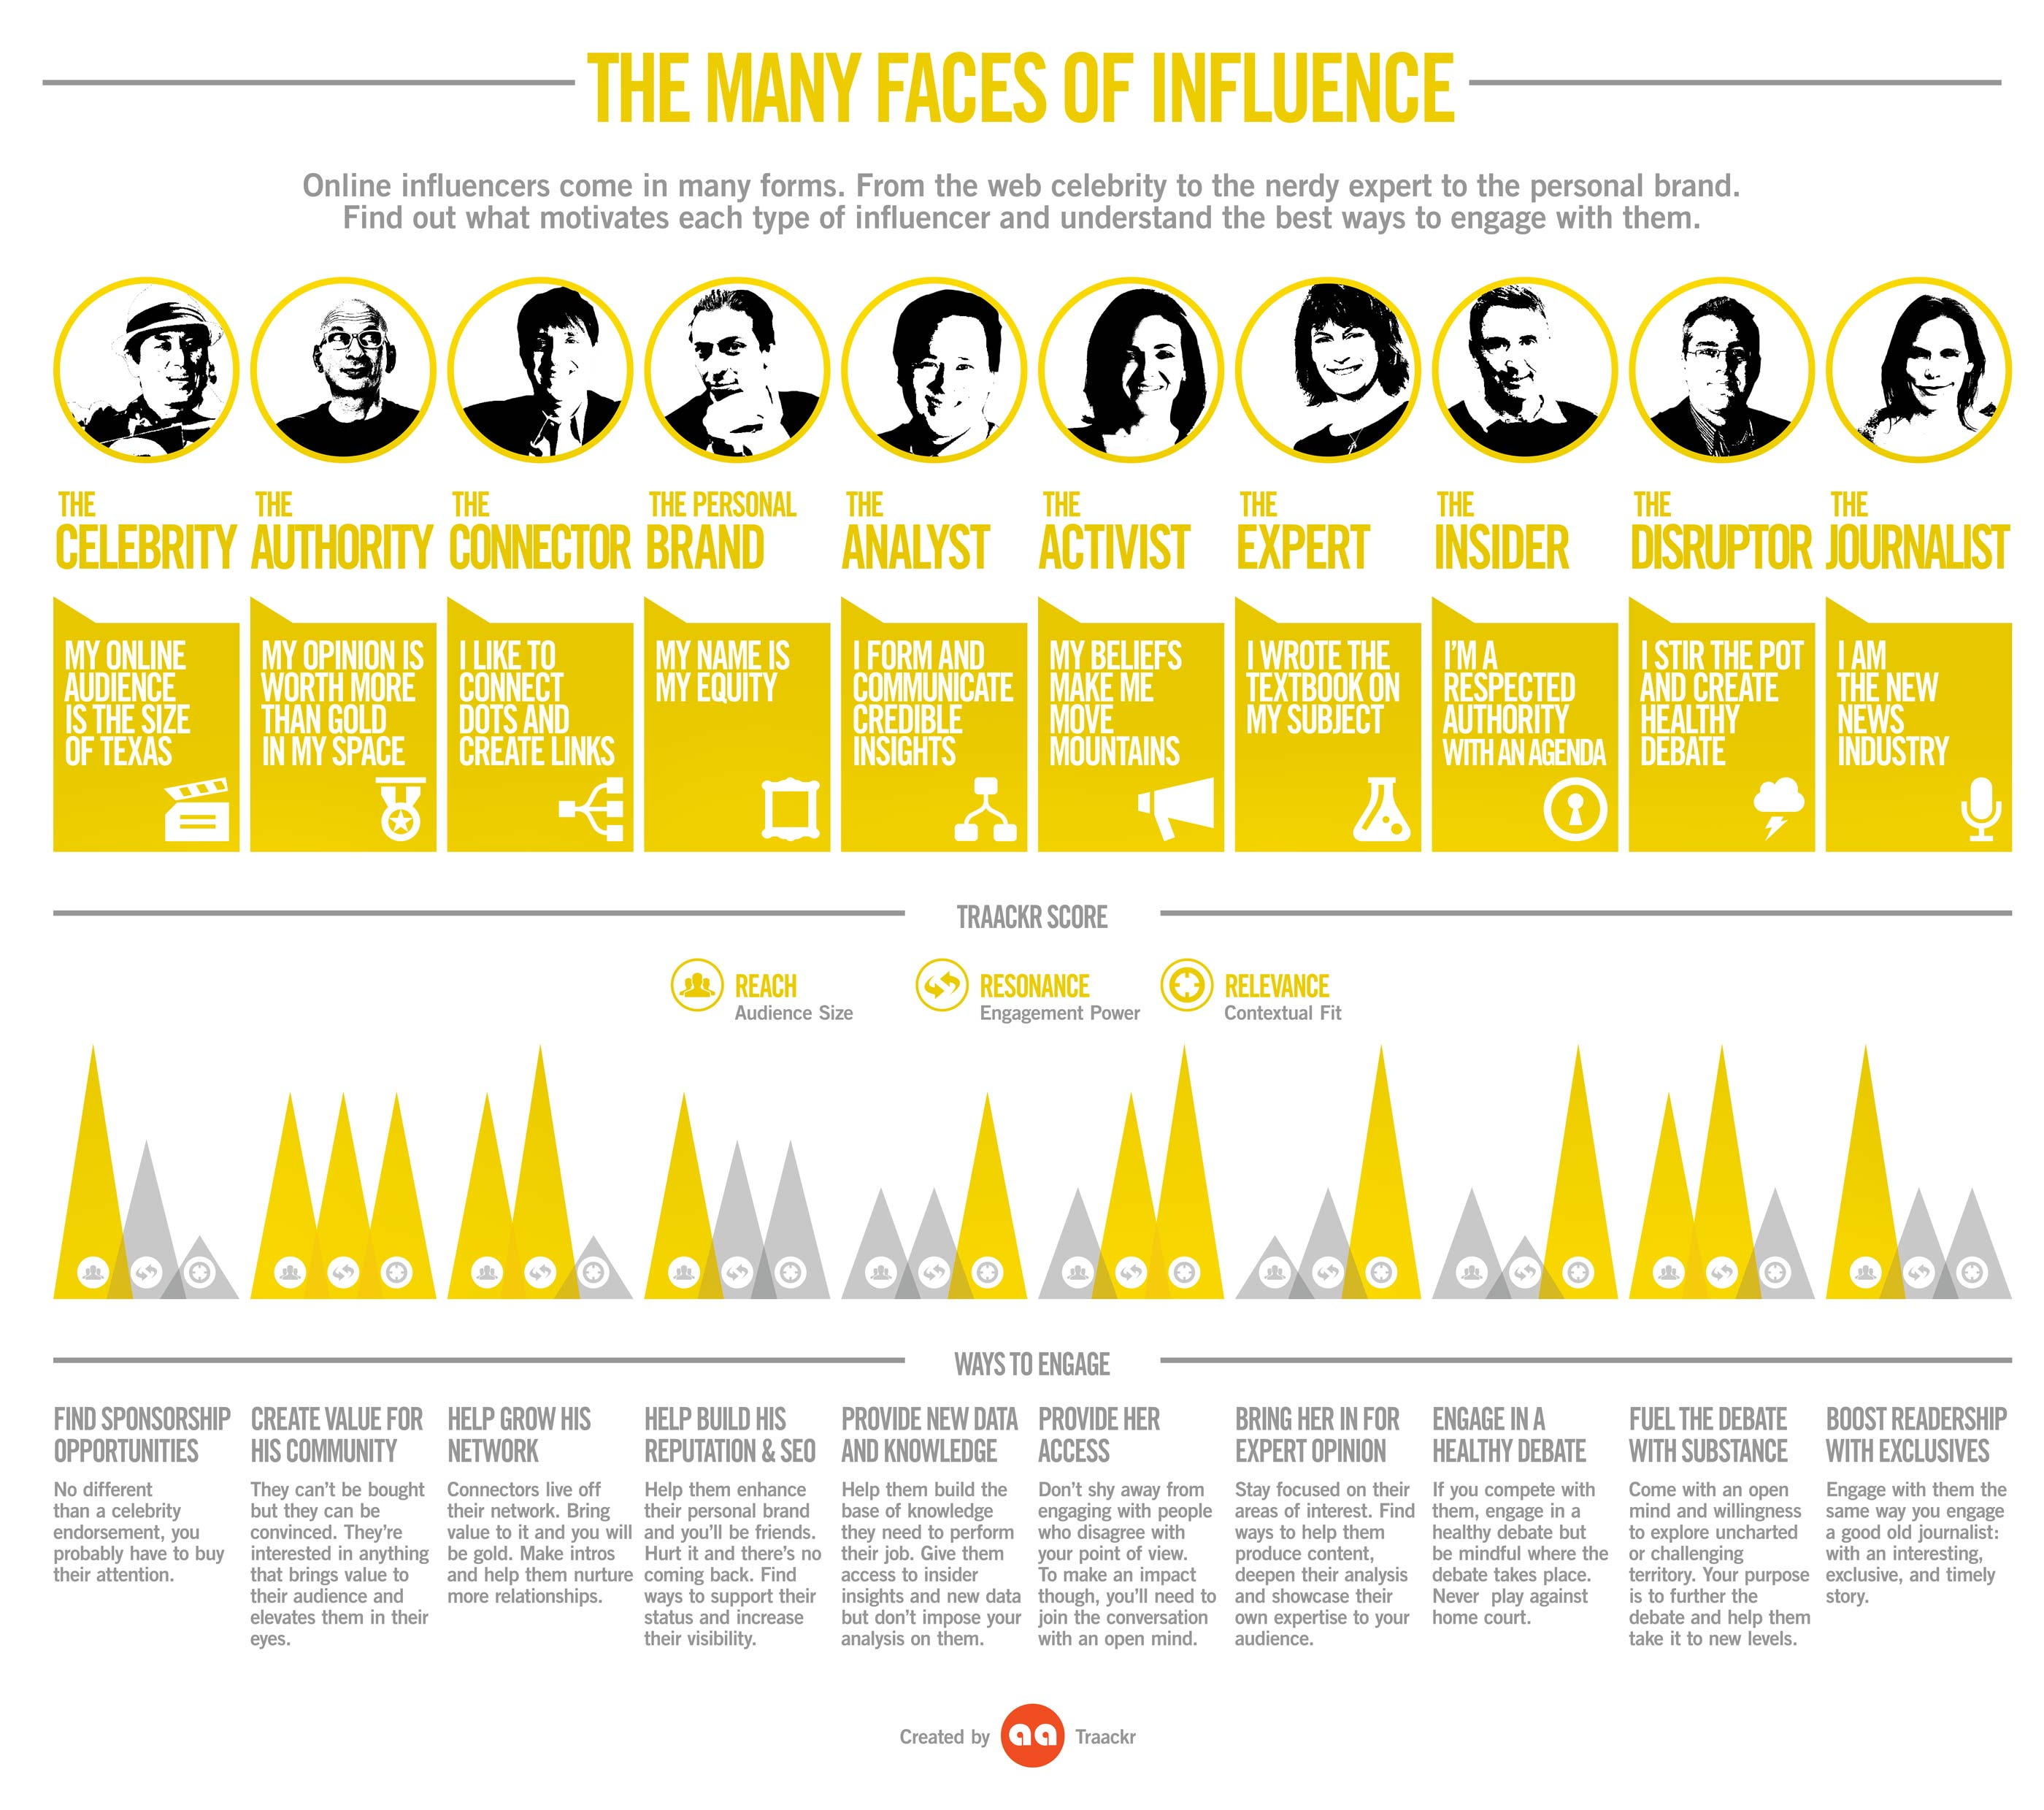 An Infographic of Les Visages de l'Influence: 10 key influencer archetypes